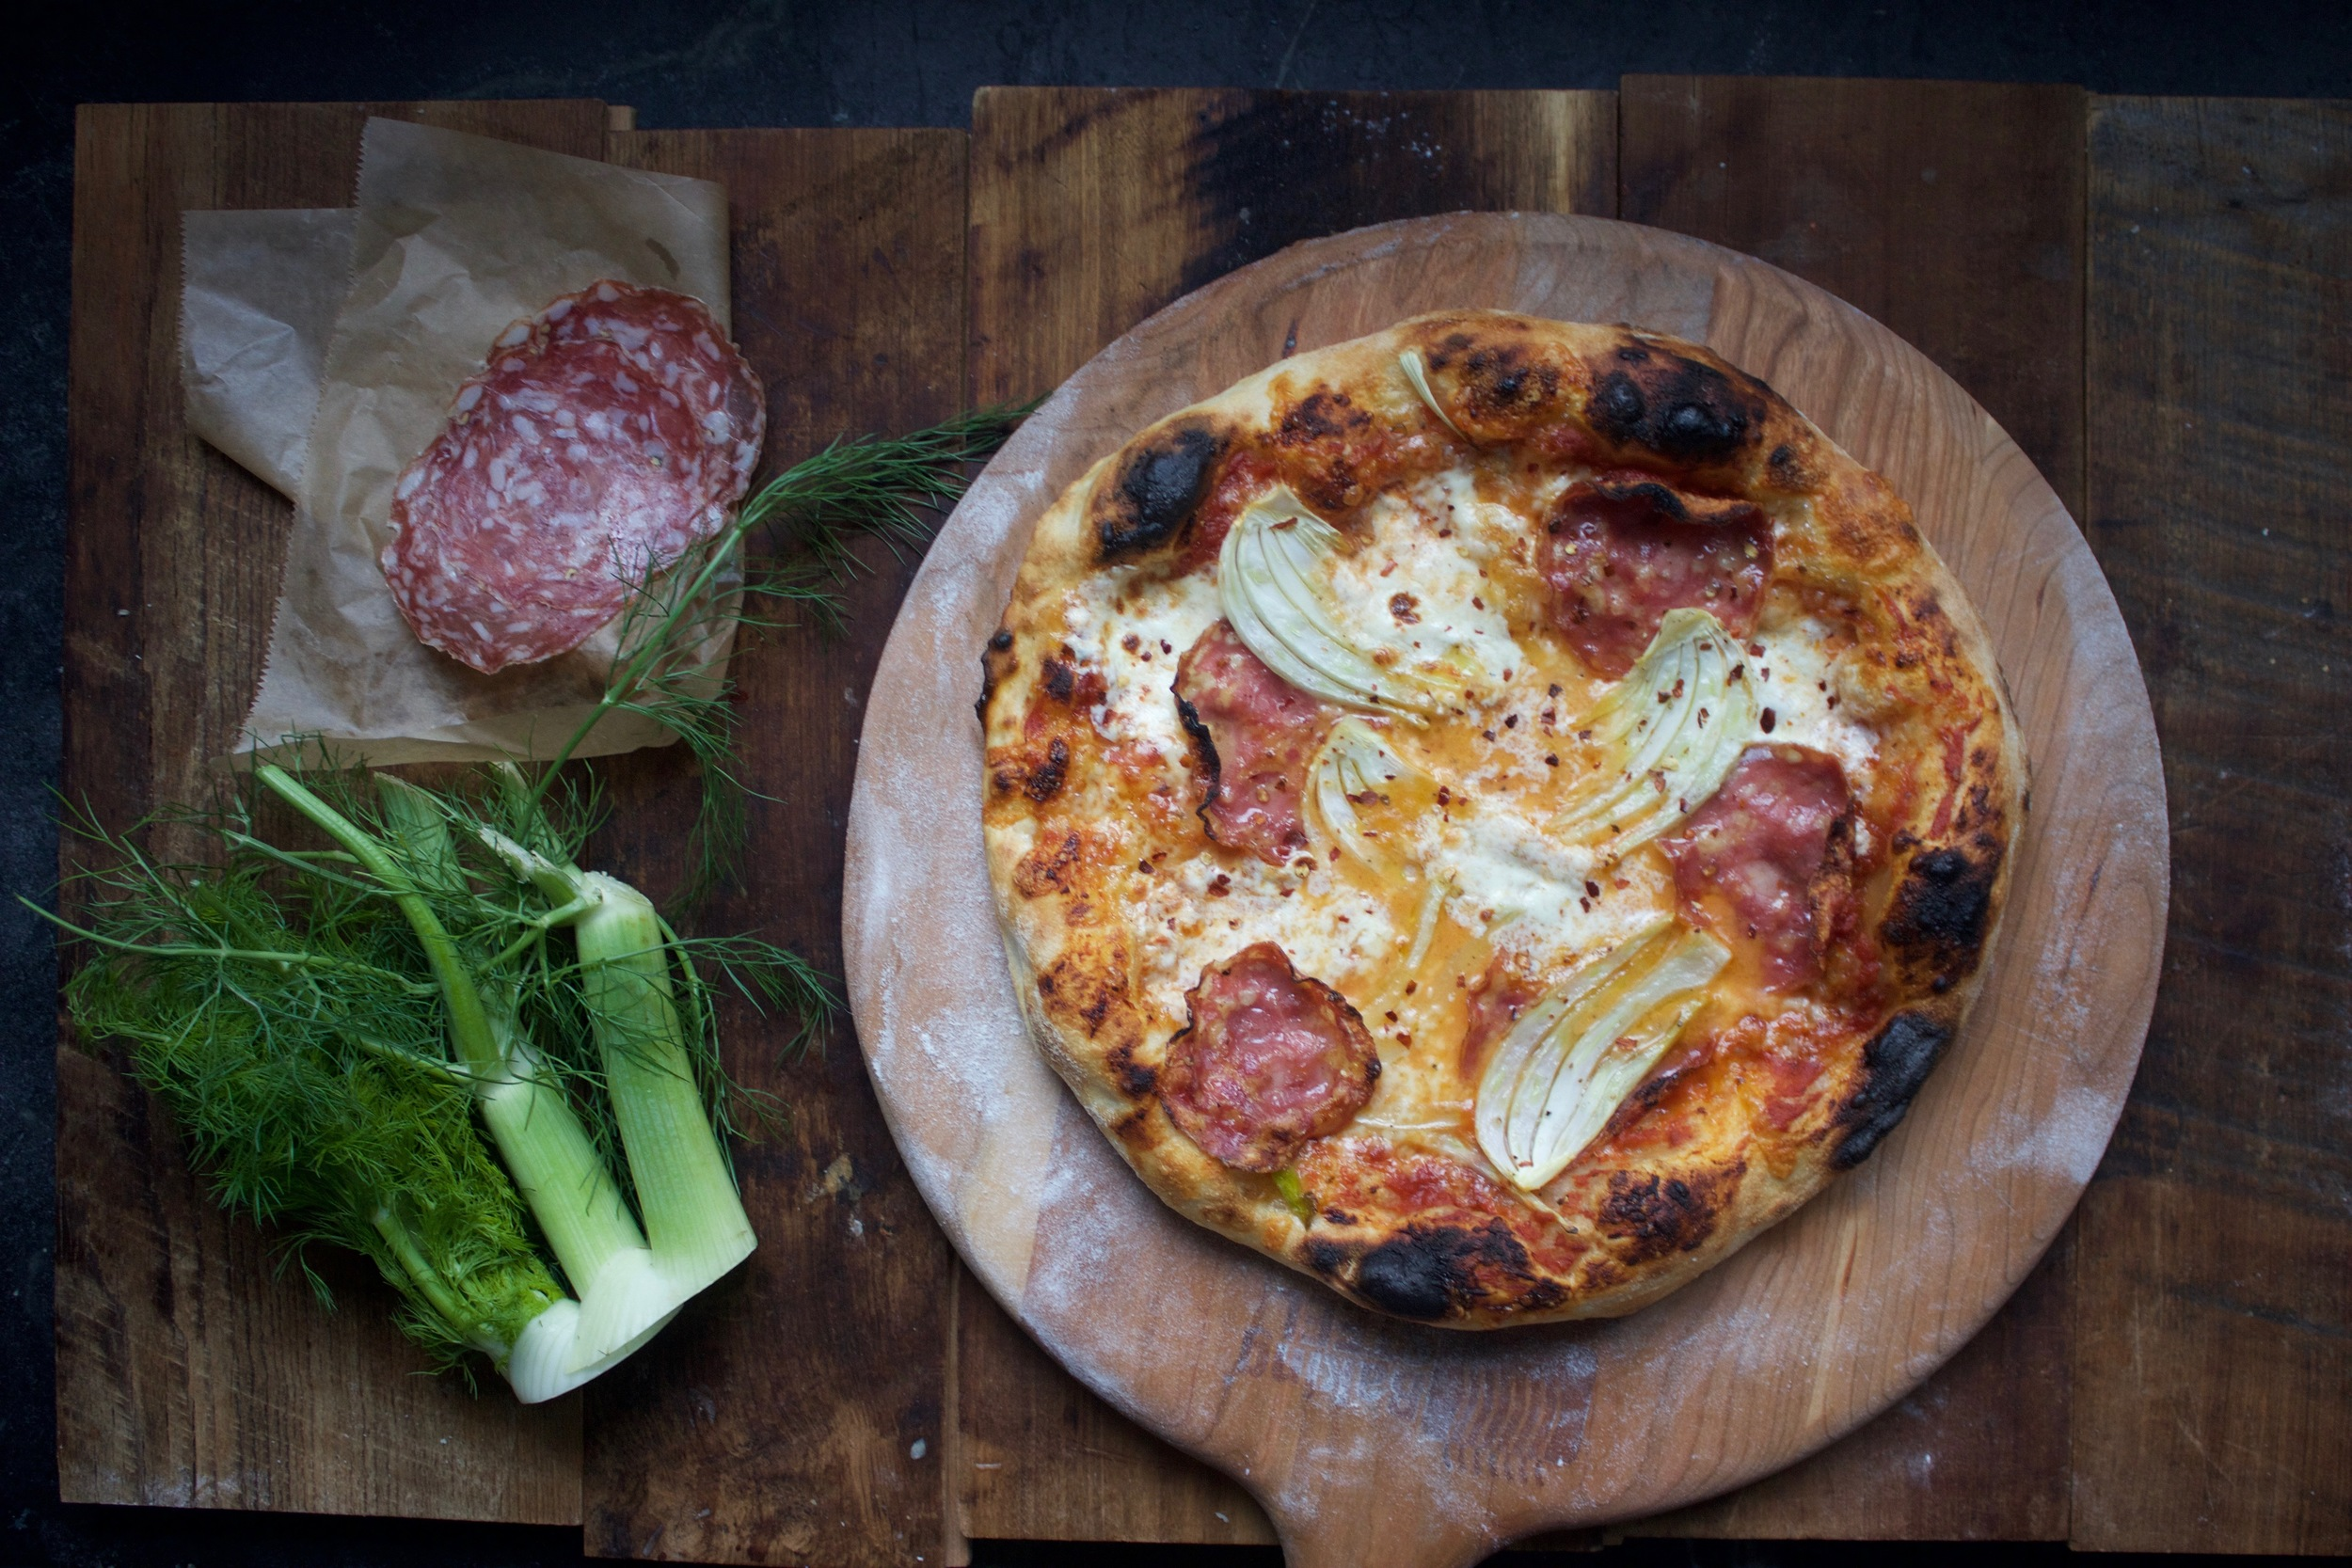 Baking Steel Pizza with Soppressate and Fennel